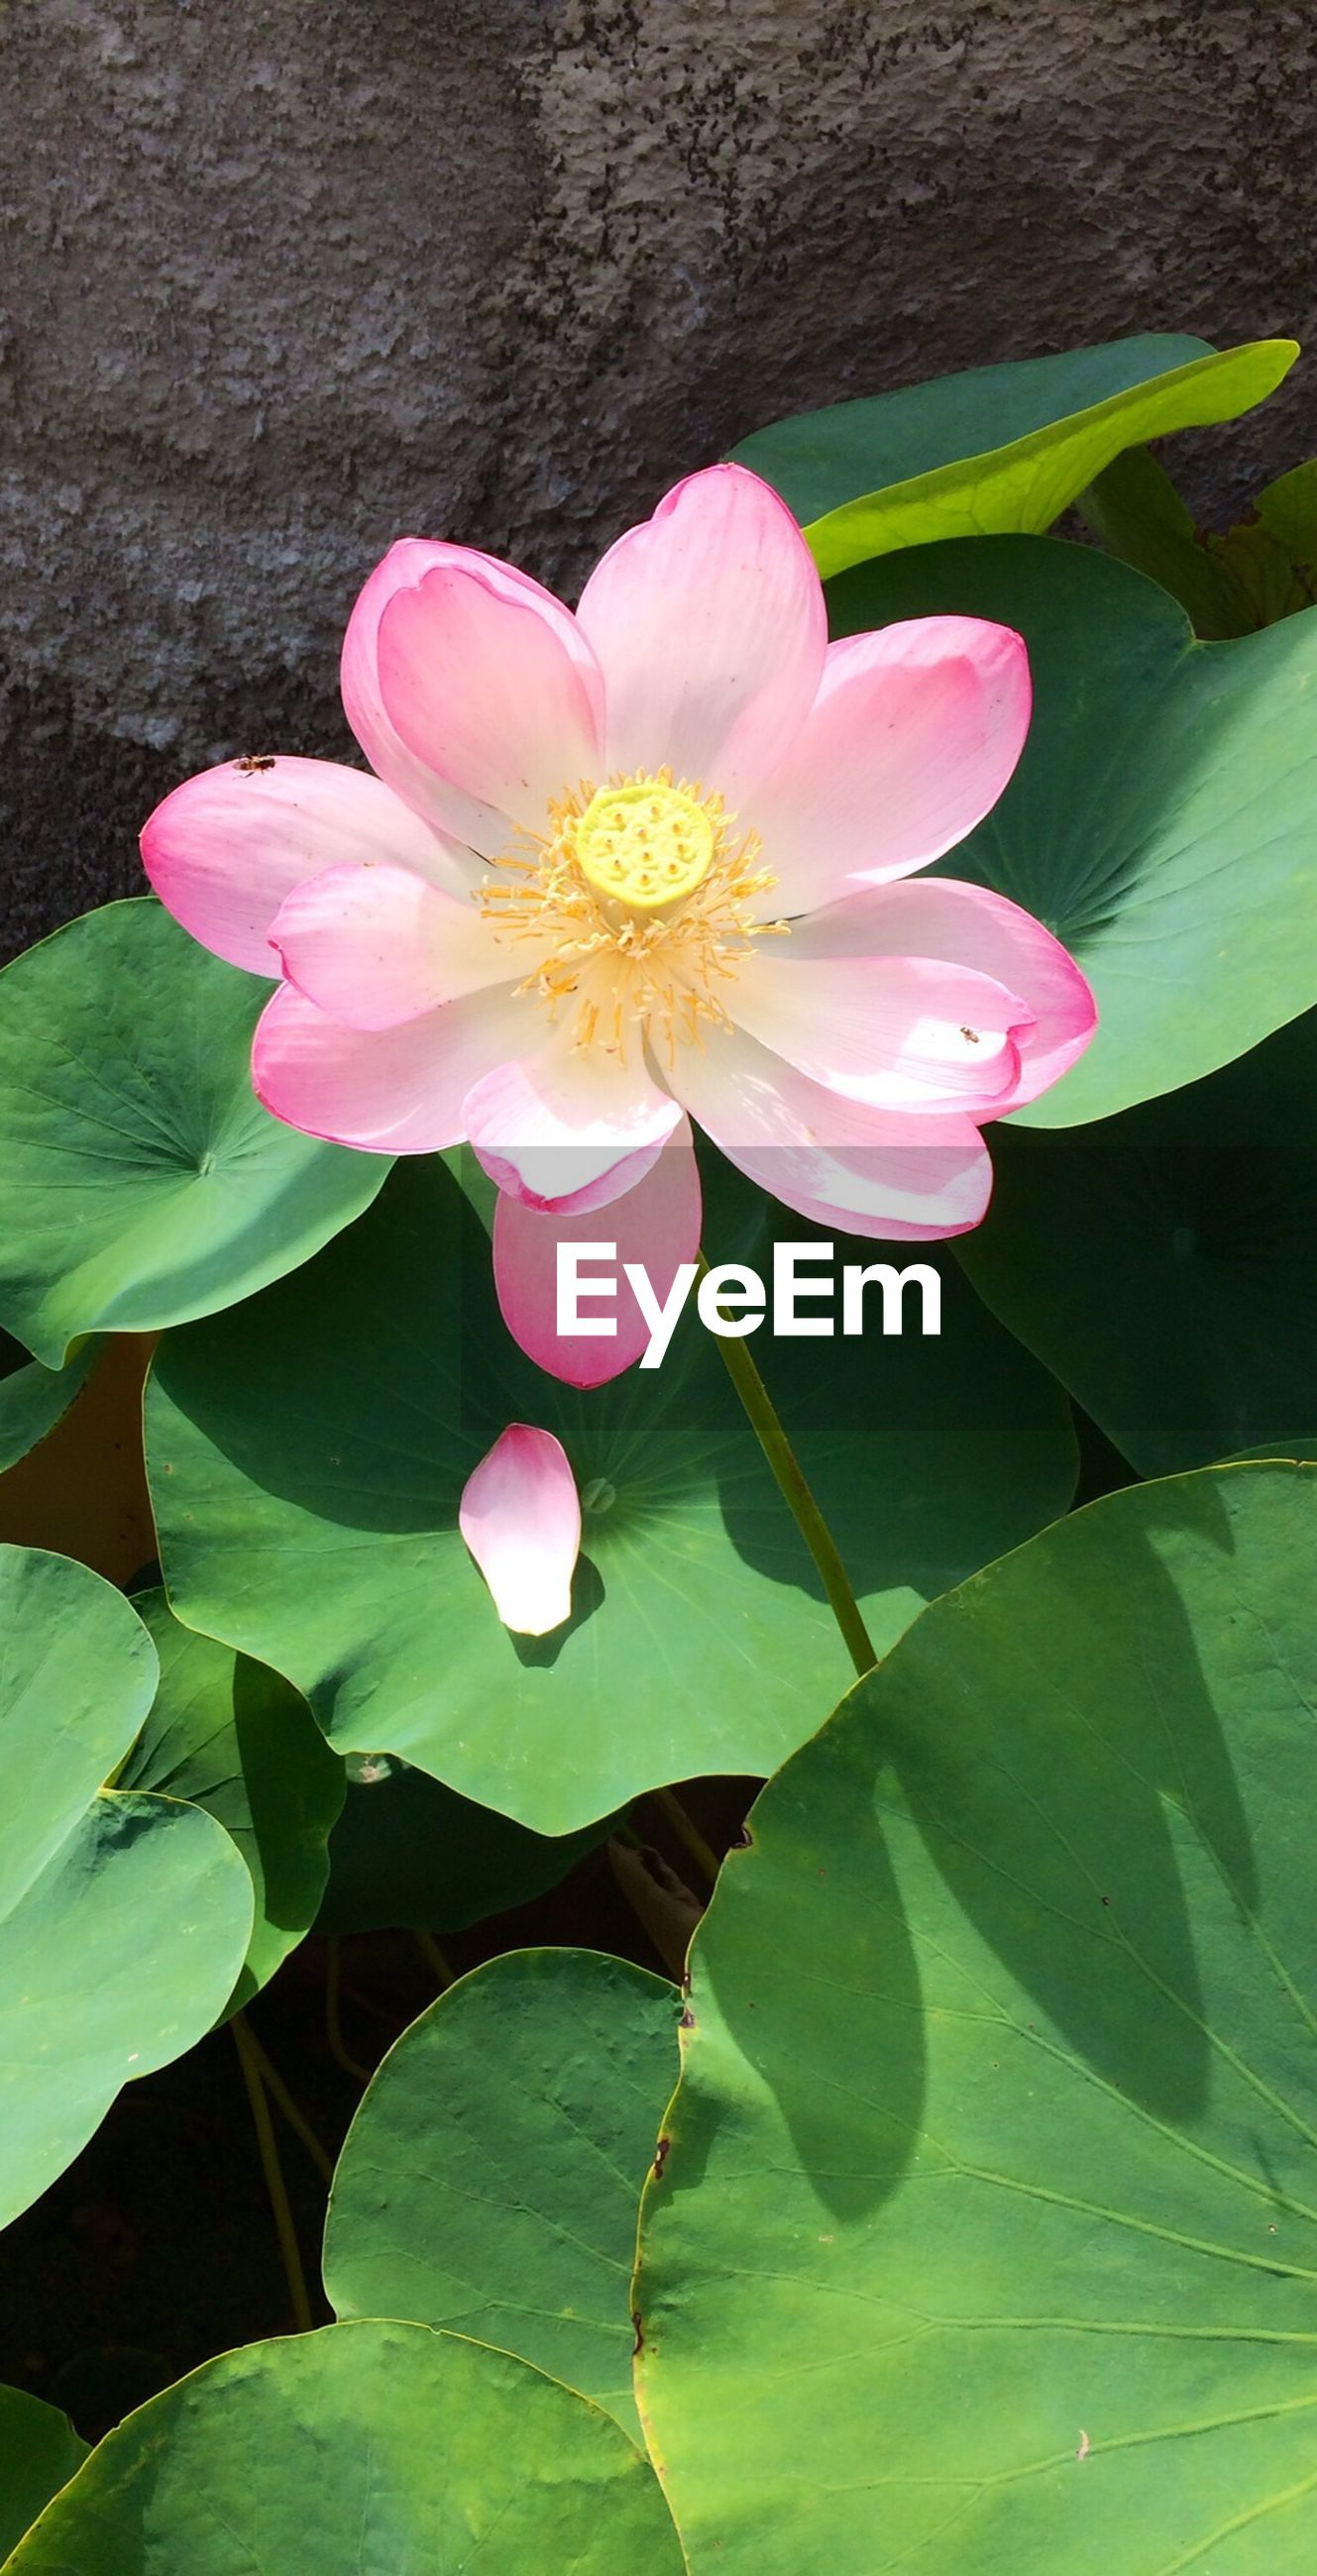 flower, petal, freshness, fragility, leaf, flower head, pink color, growth, beauty in nature, single flower, nature, blooming, plant, water lily, close-up, green color, in bloom, pond, lotus water lily, blossom